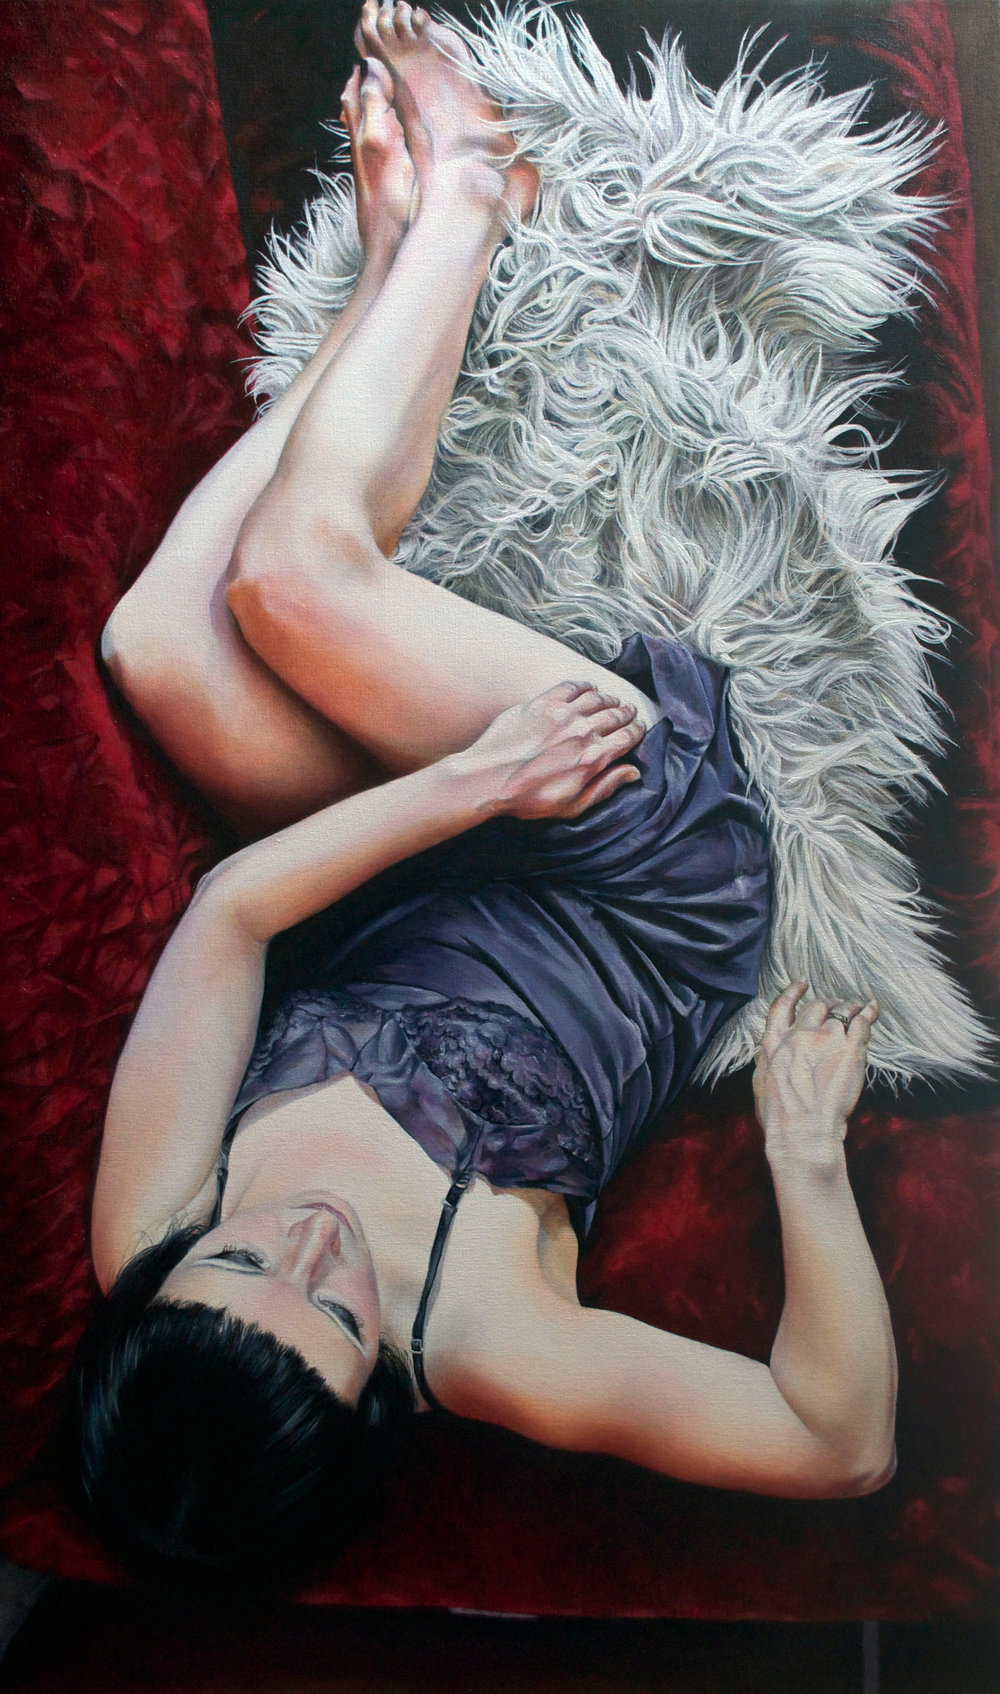 Victoria Selbech The Slip crylic on Canvas 46 x 28